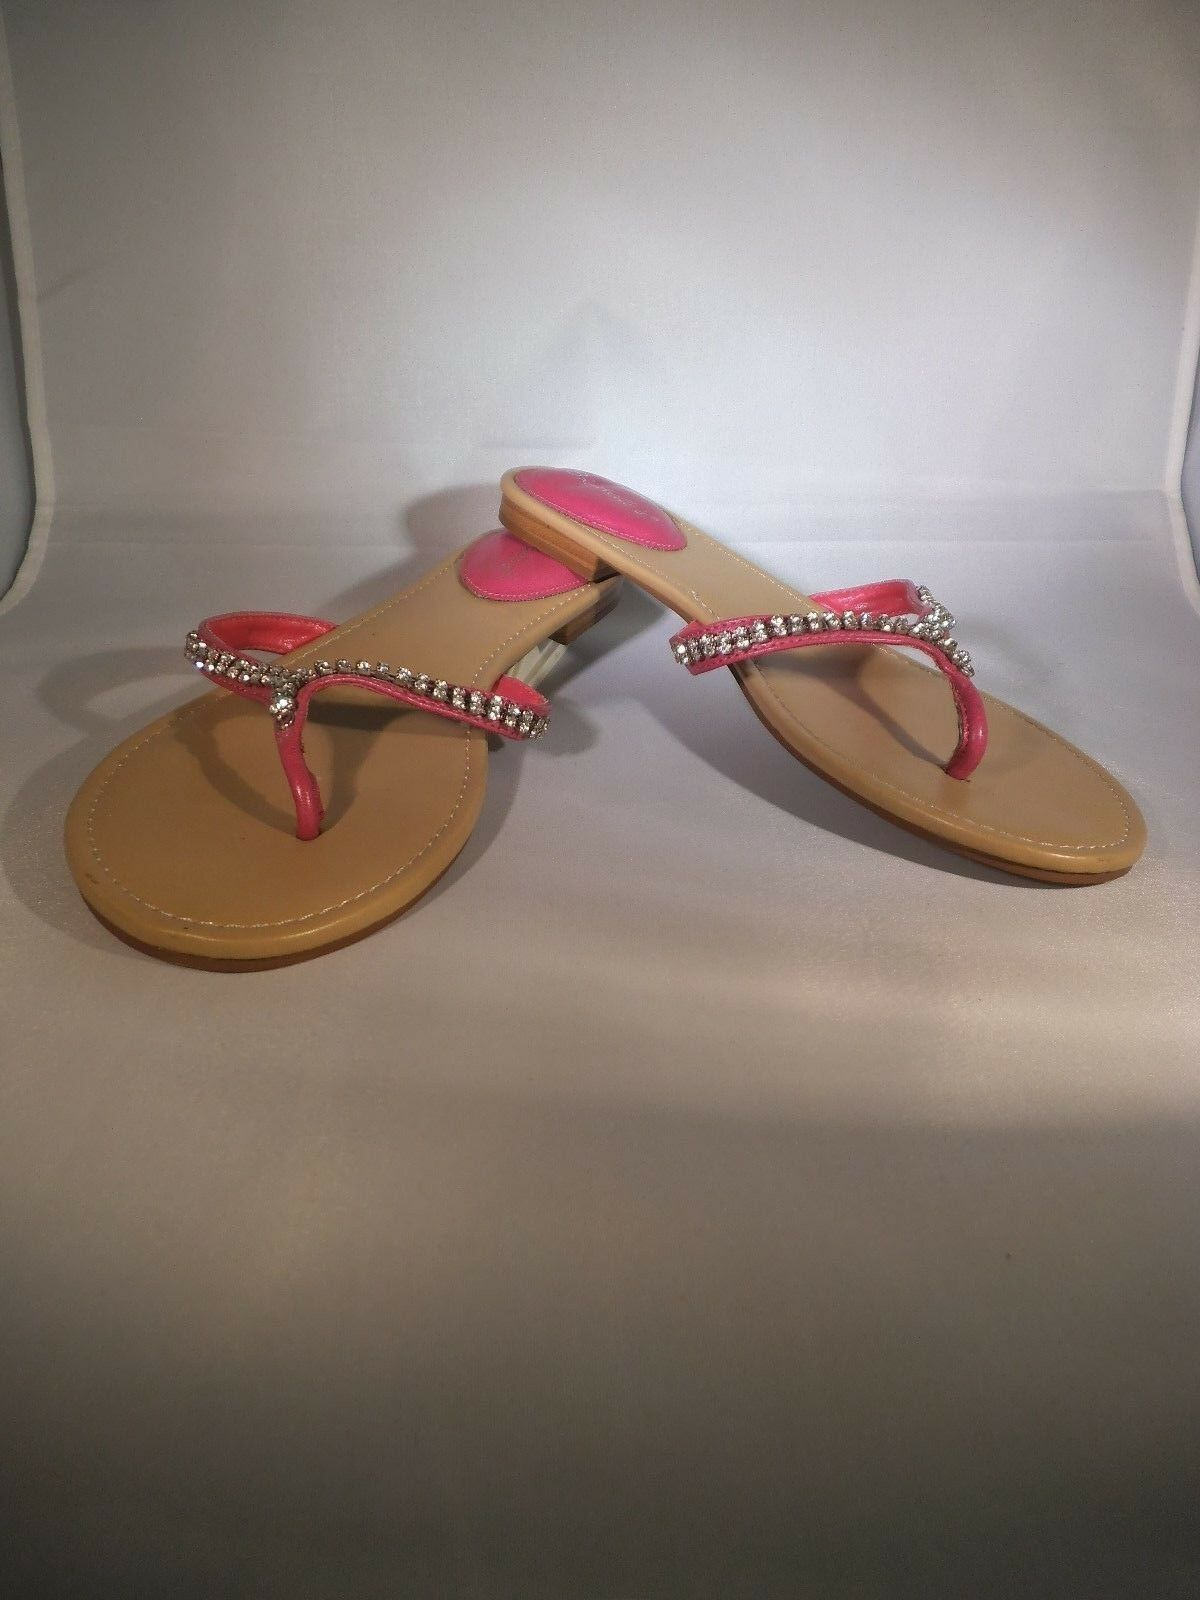 NEW LADIES BRECKELLE'S SIZE PINK 9 SANDALS FLIP FLOPS PINK SIZE RHINESTONES CRYSTALS BLING d58f67